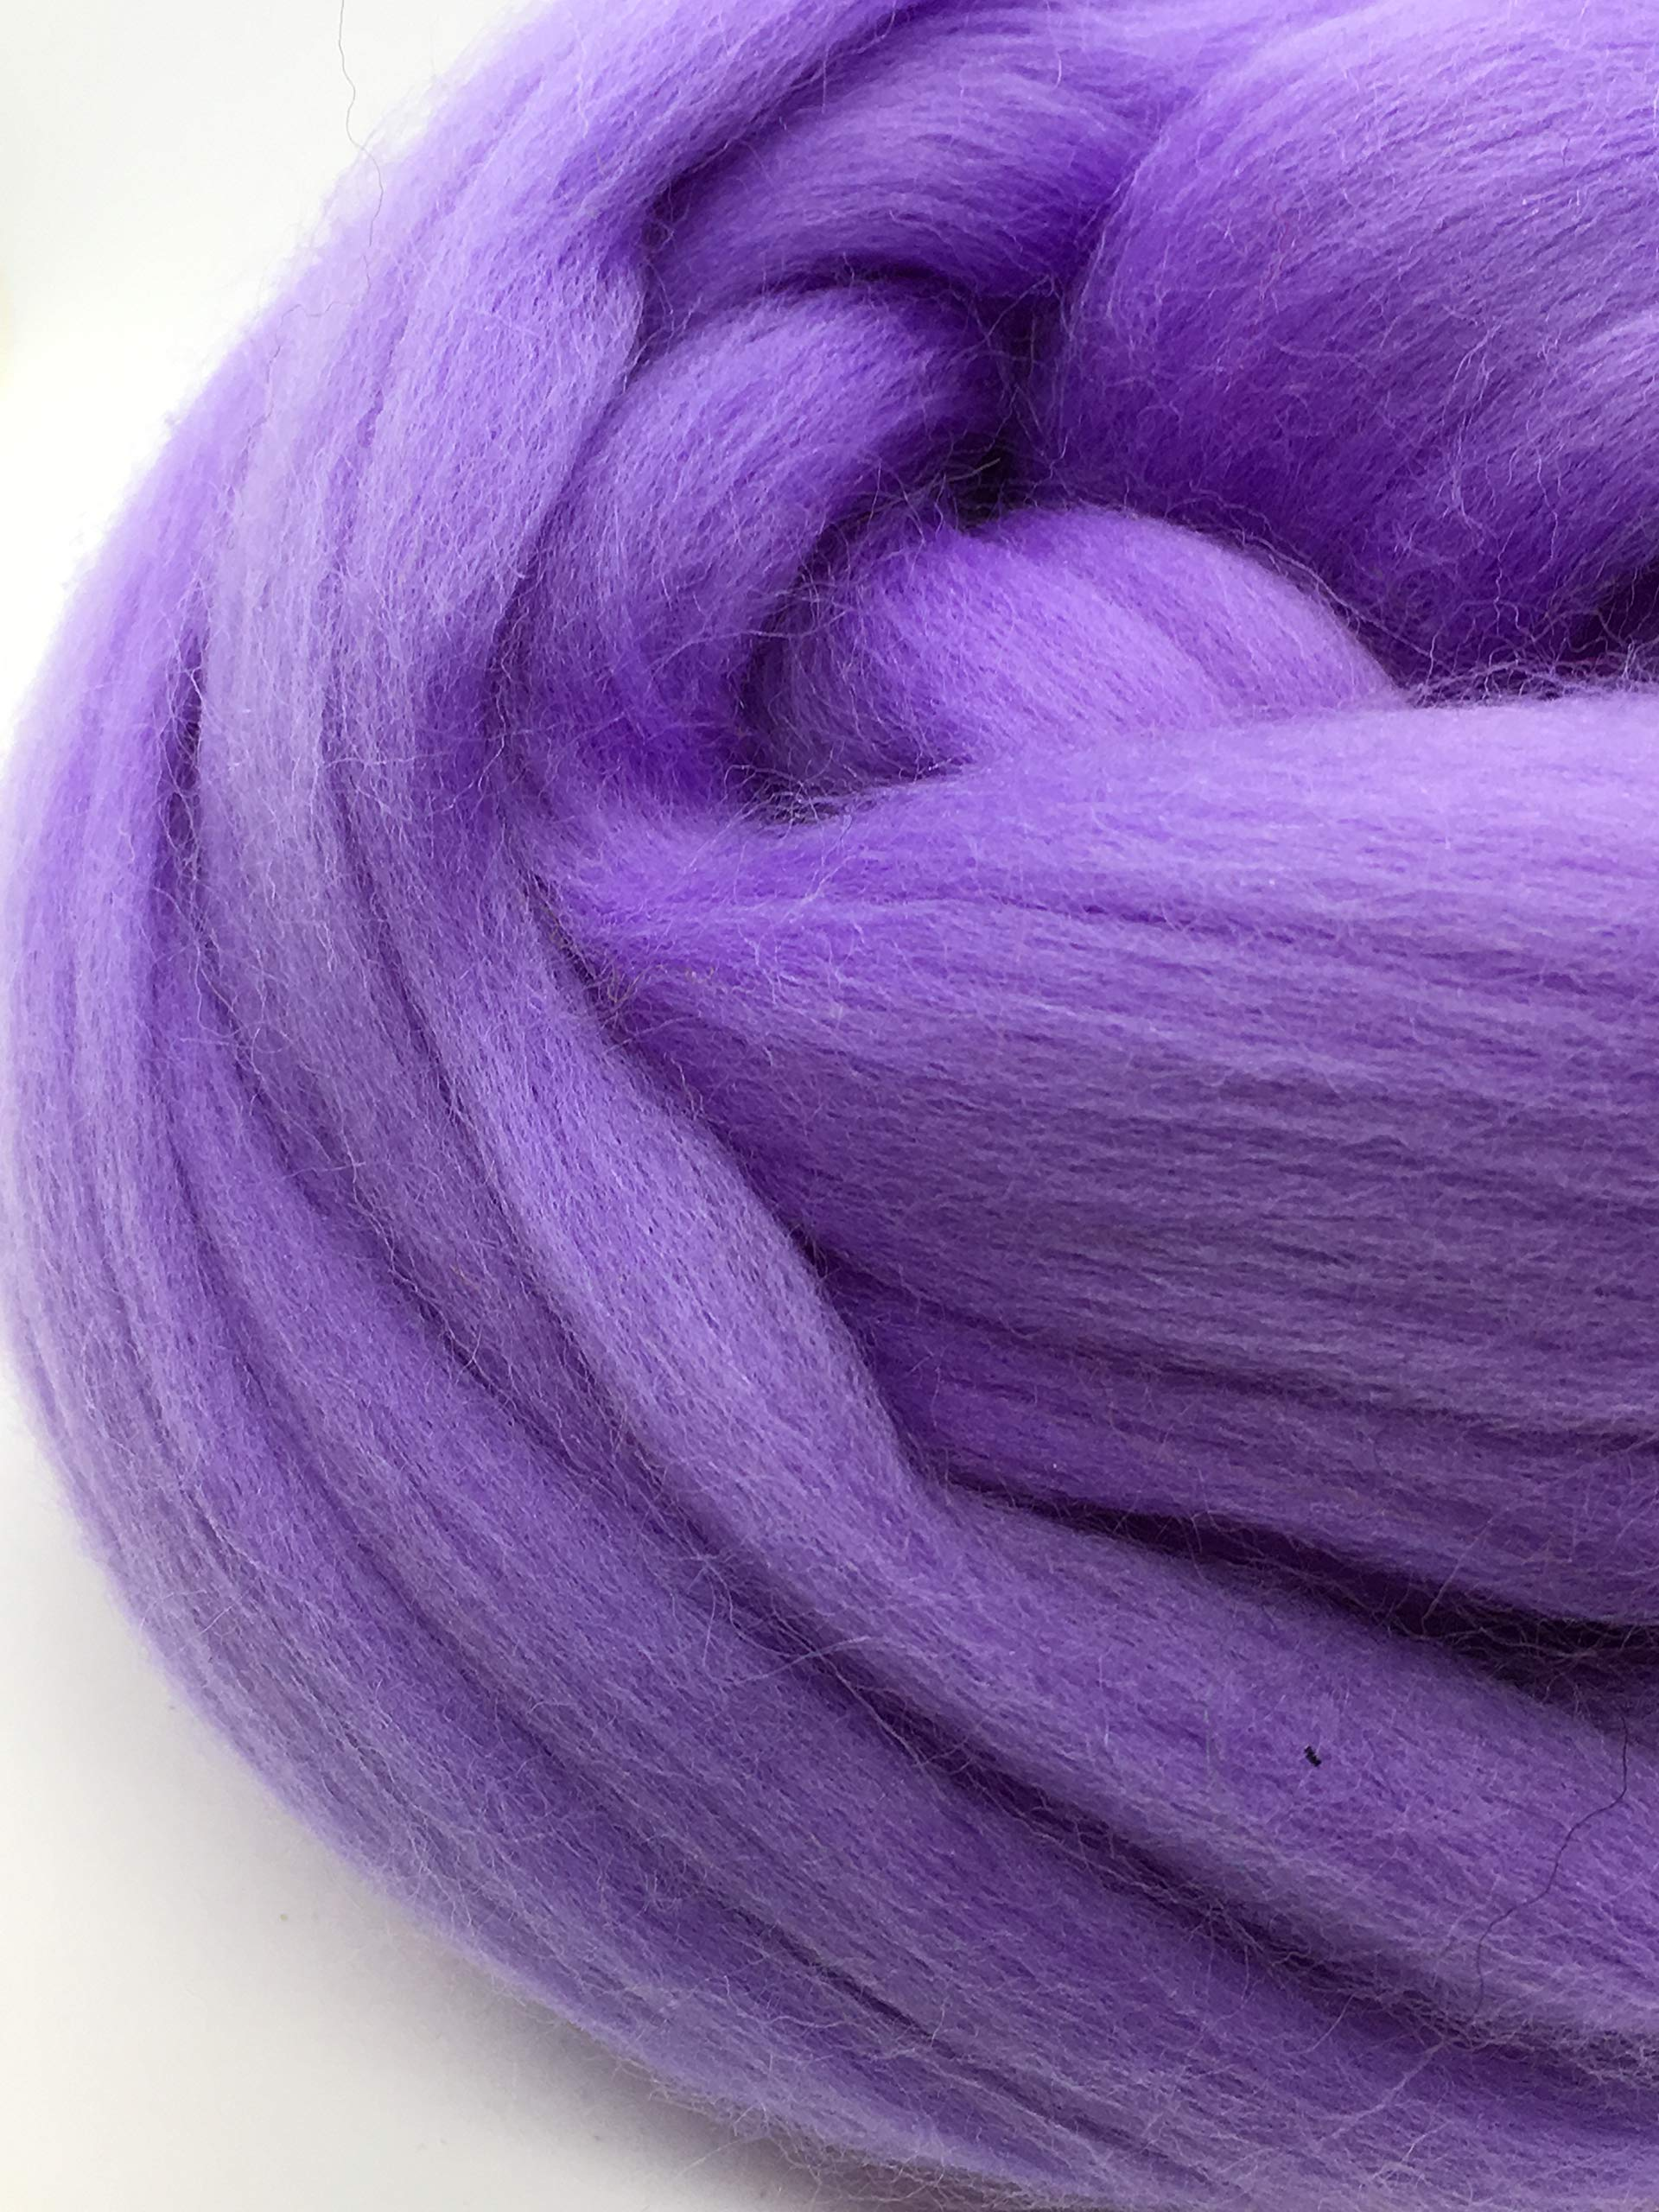 Periwinkle Merino Wool Top Roving Fiber Spinning, Felting Crafts USA (4 pounds) by Shep's Wool (Image #8)